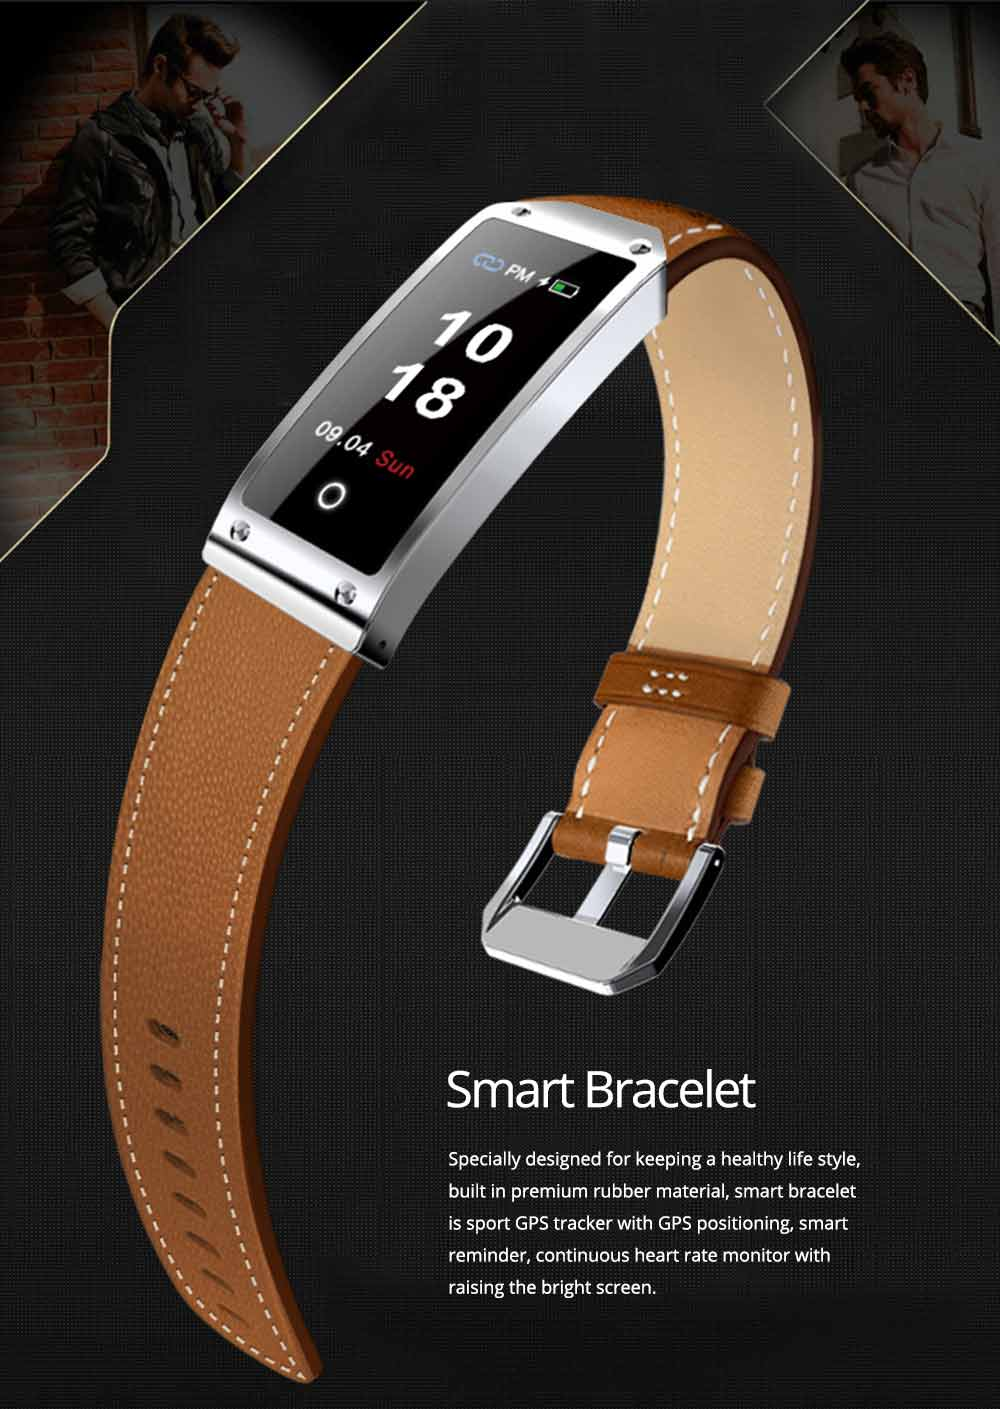 Smart Bracelet with GPS Positioning for Continuous Heart Rate Monitoring and Call Reminder 0